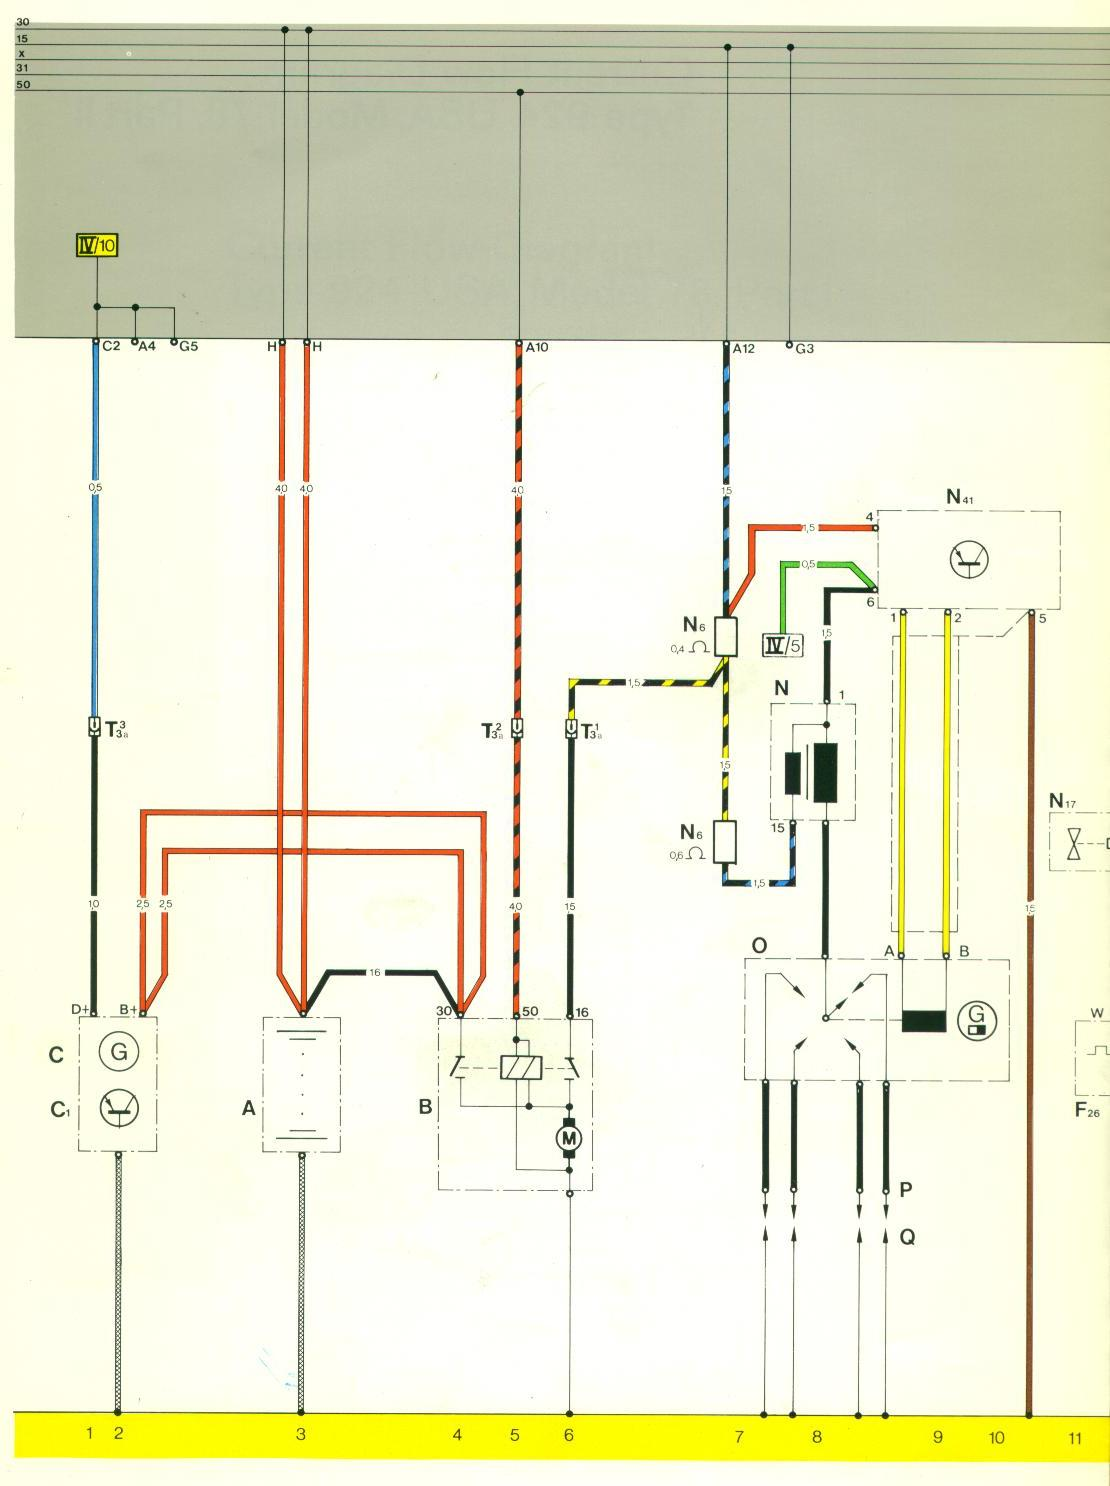 1978 porsche 924 wiring diagram automobile 1984 944 fuse box